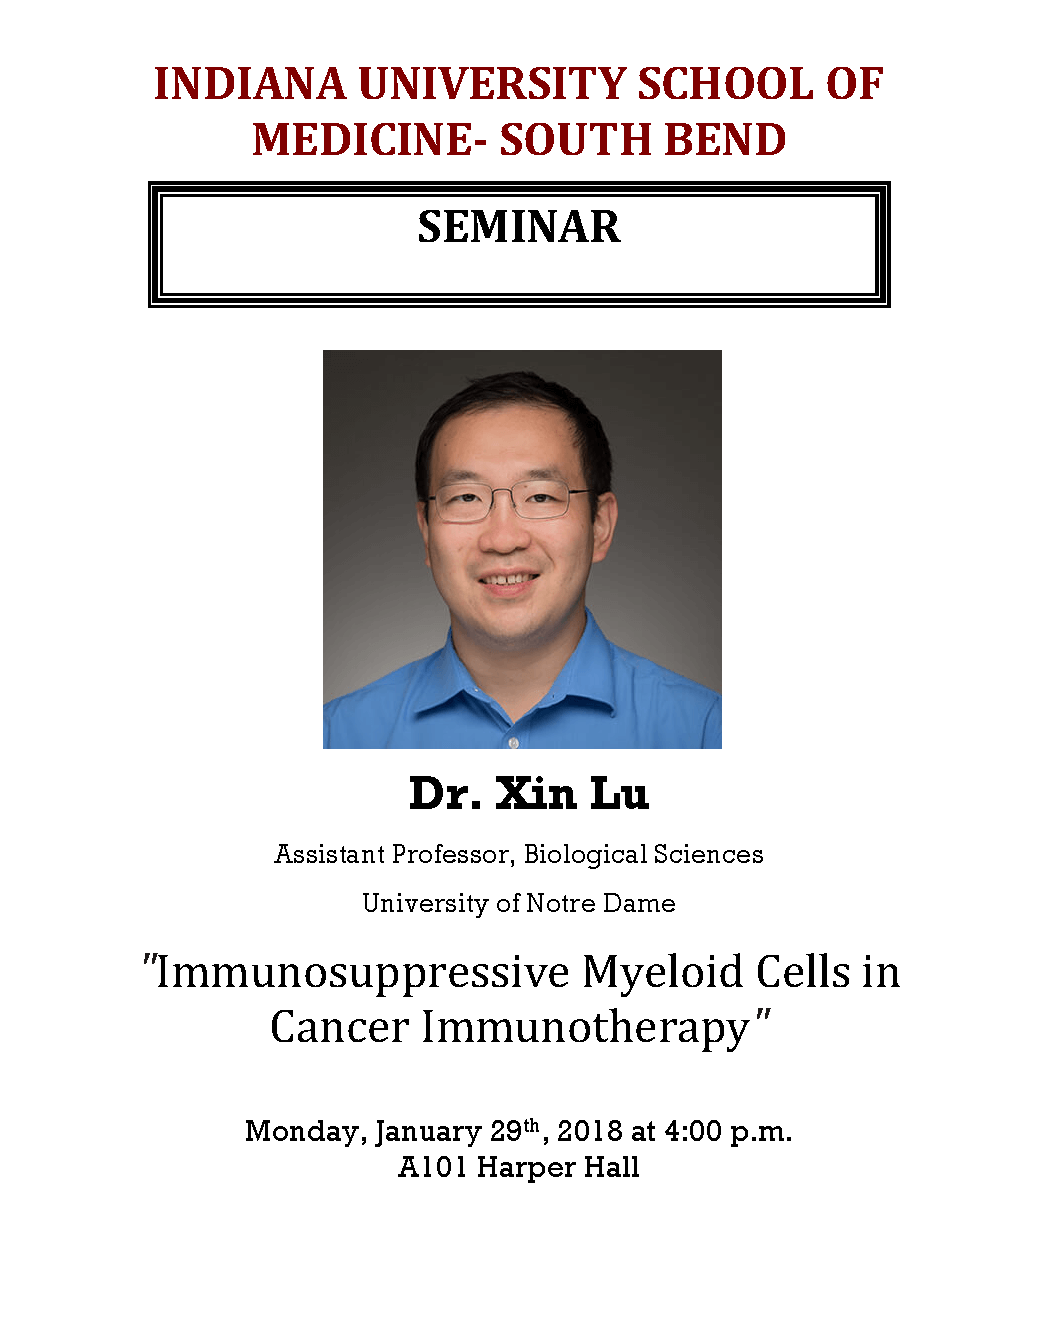 Dr Xin Lu Seminar January 29 2018